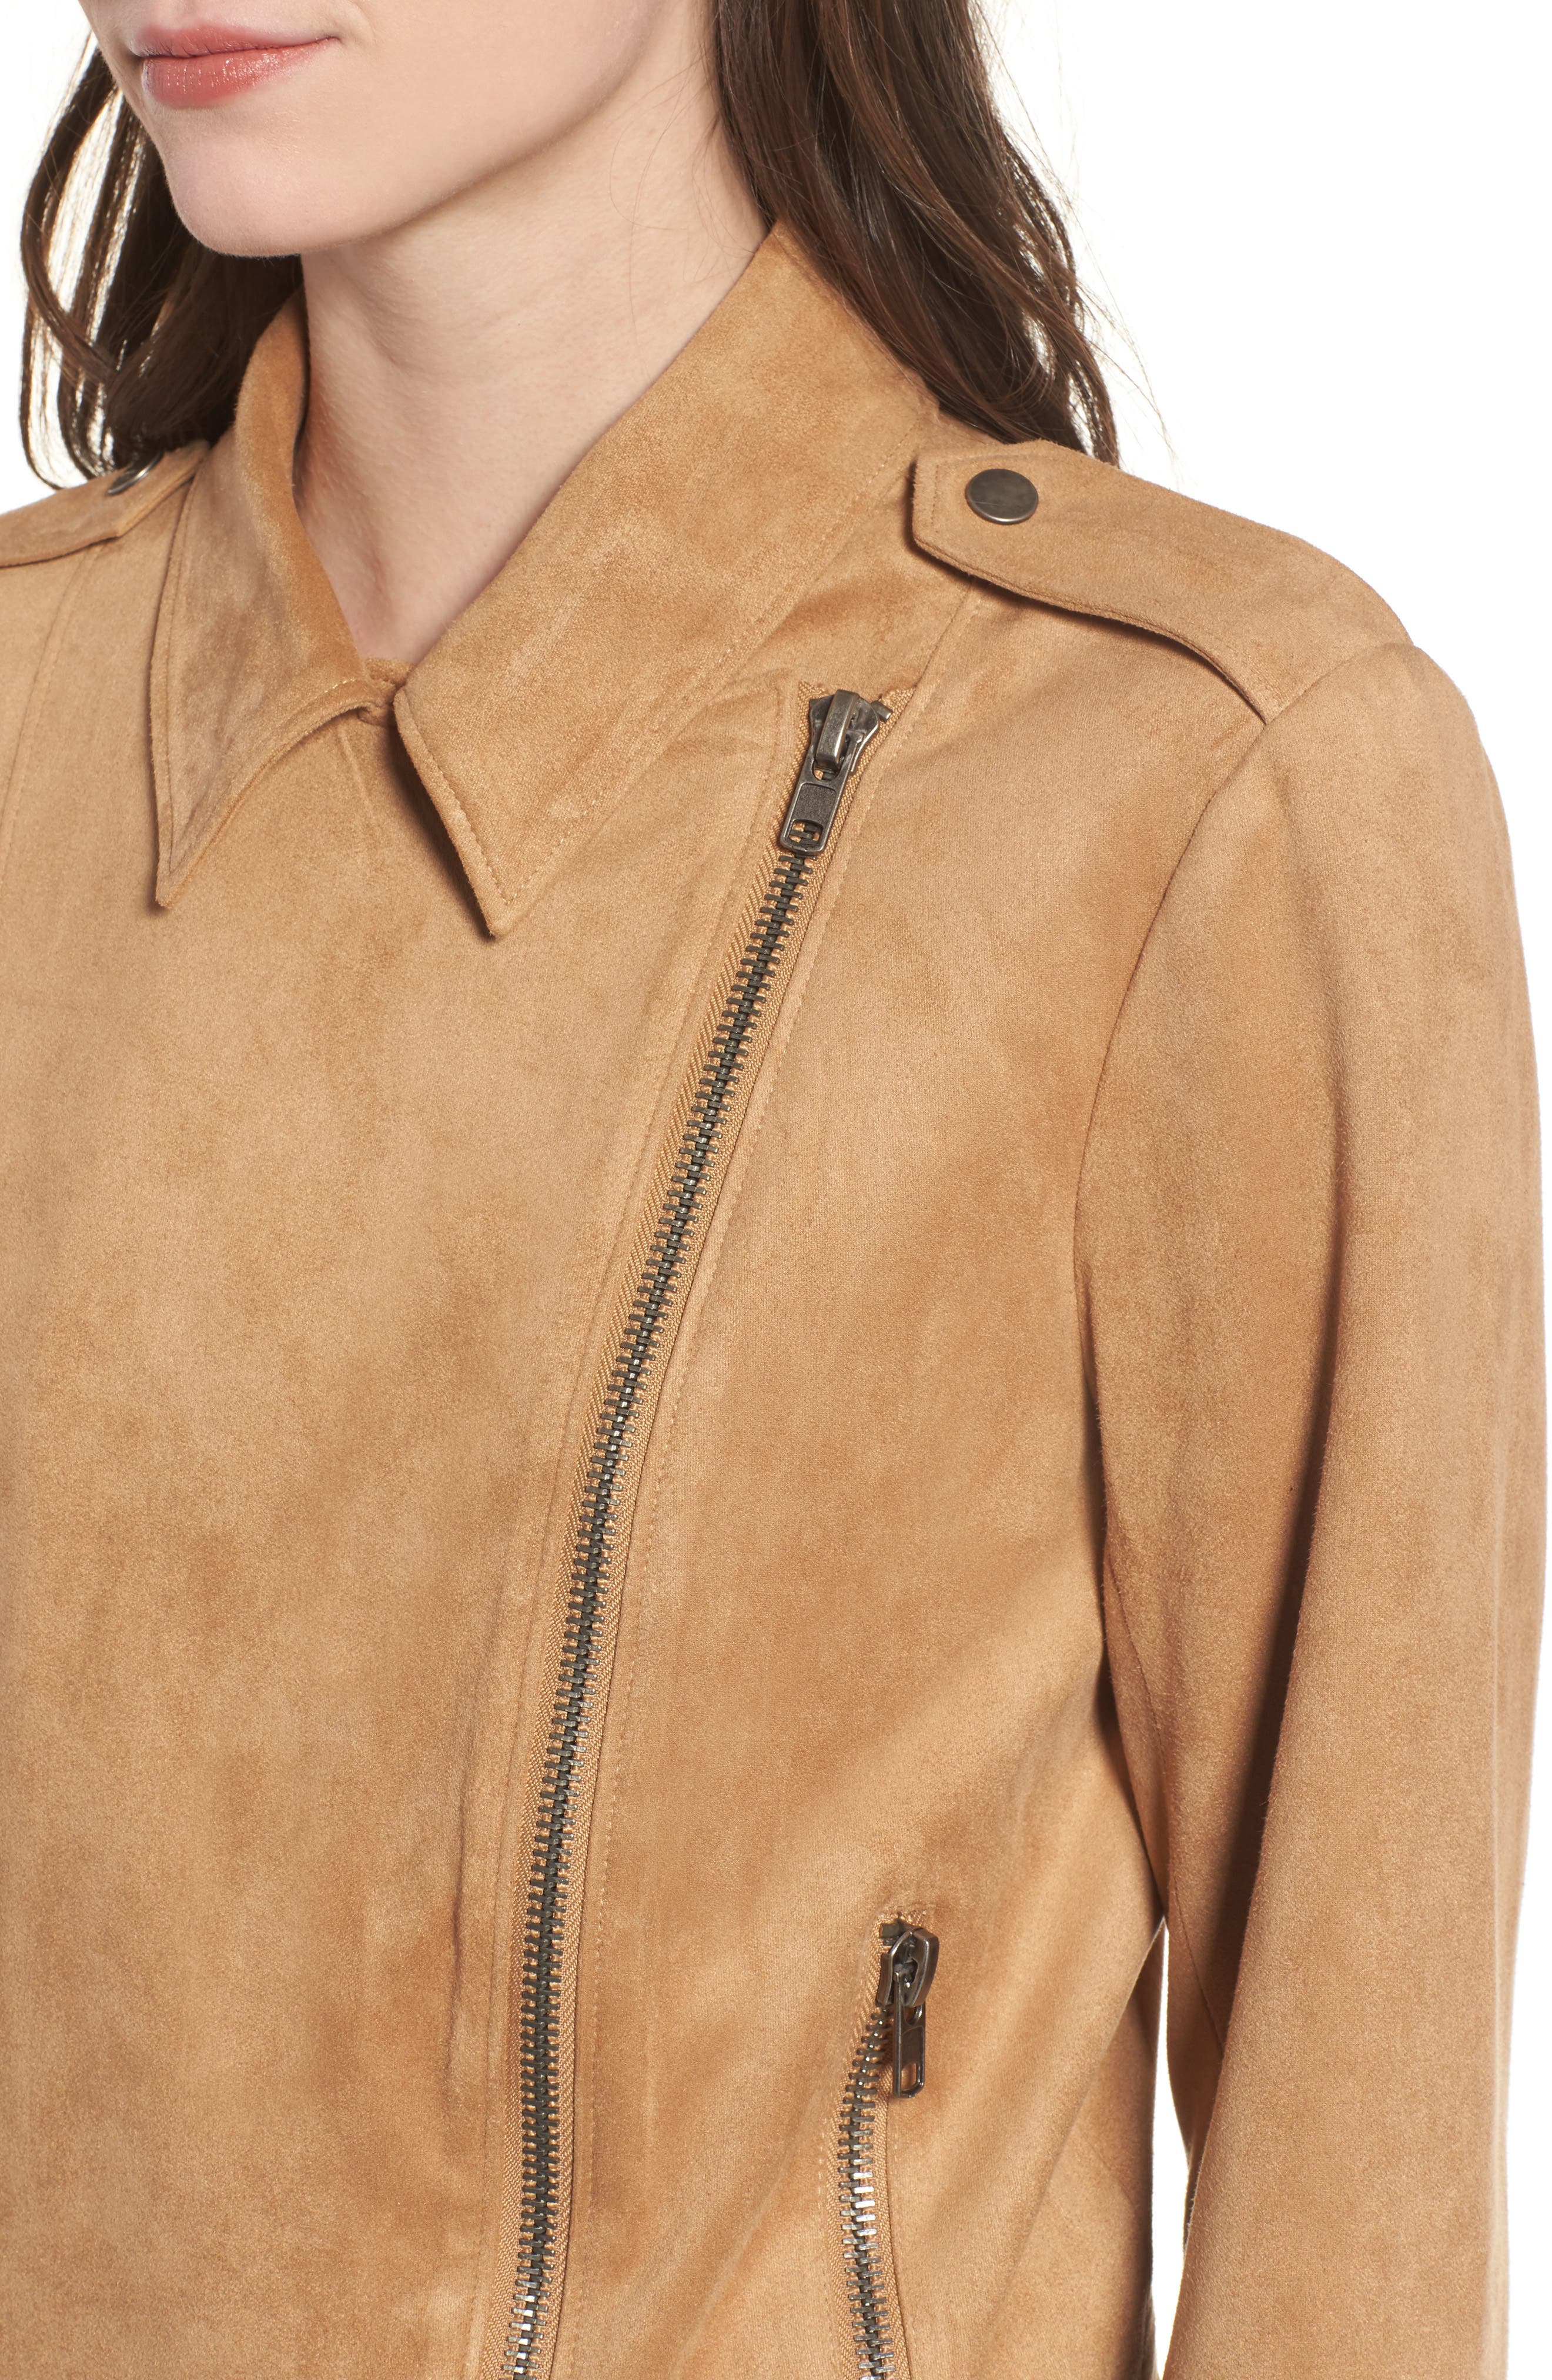 Nathan Faux Suede Jacket,                             Alternate thumbnail 4, color,                             Whiskey